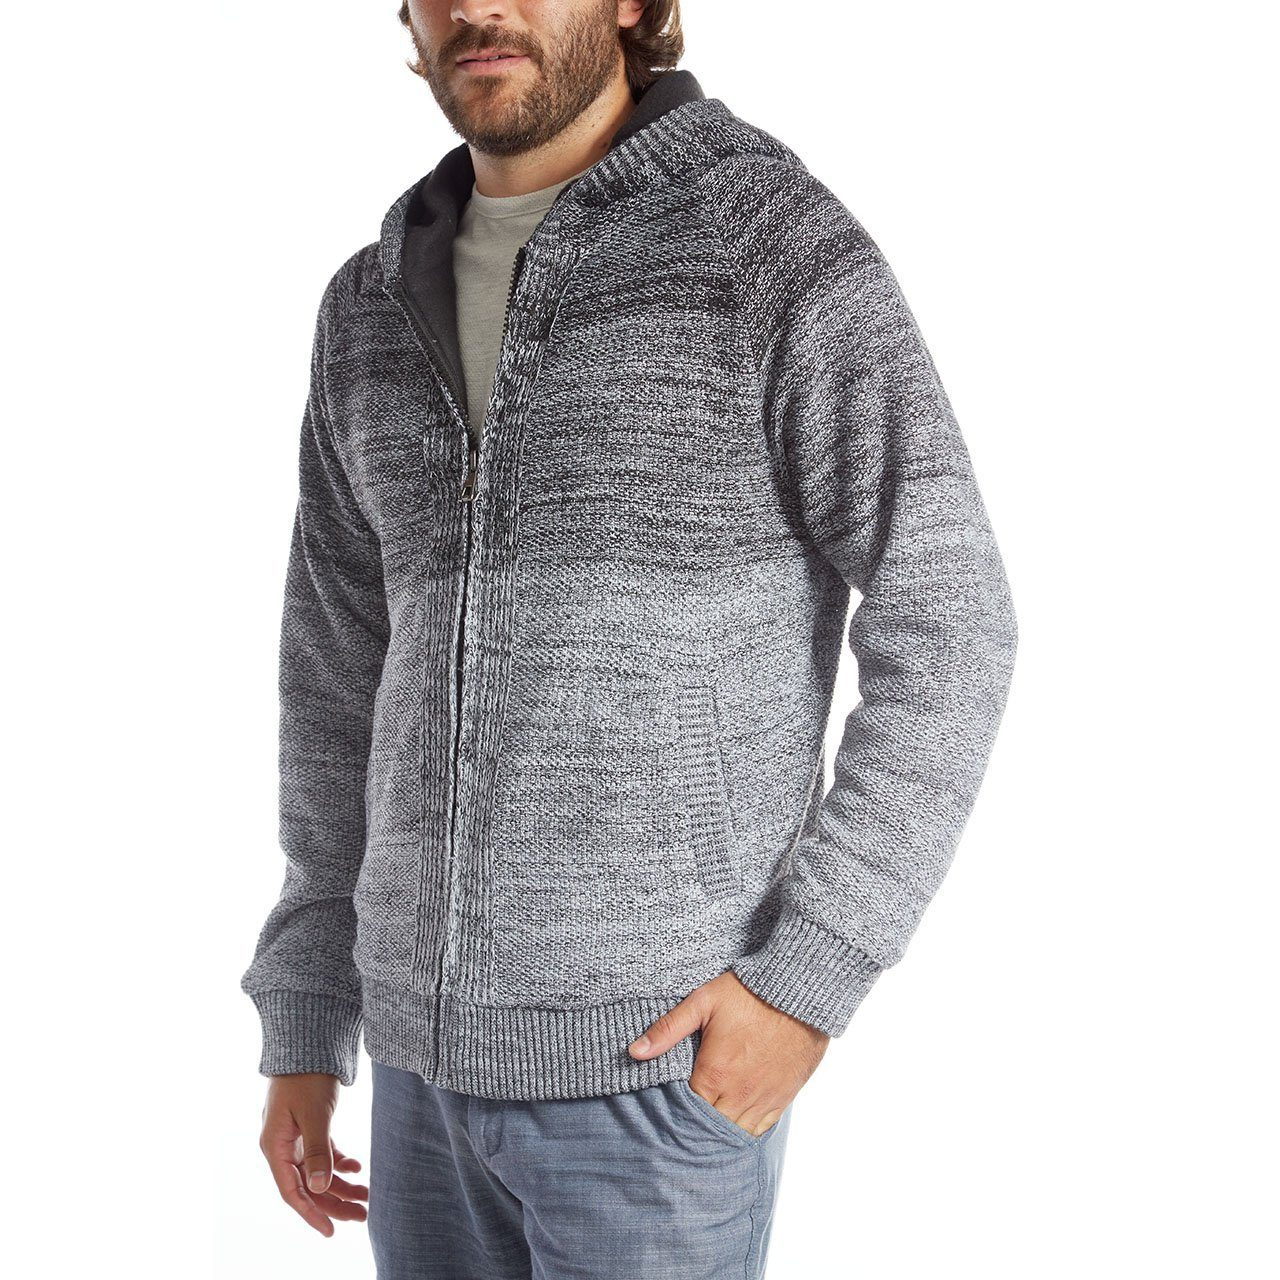 Sweater - Bill Zip Up Hombre Sweater